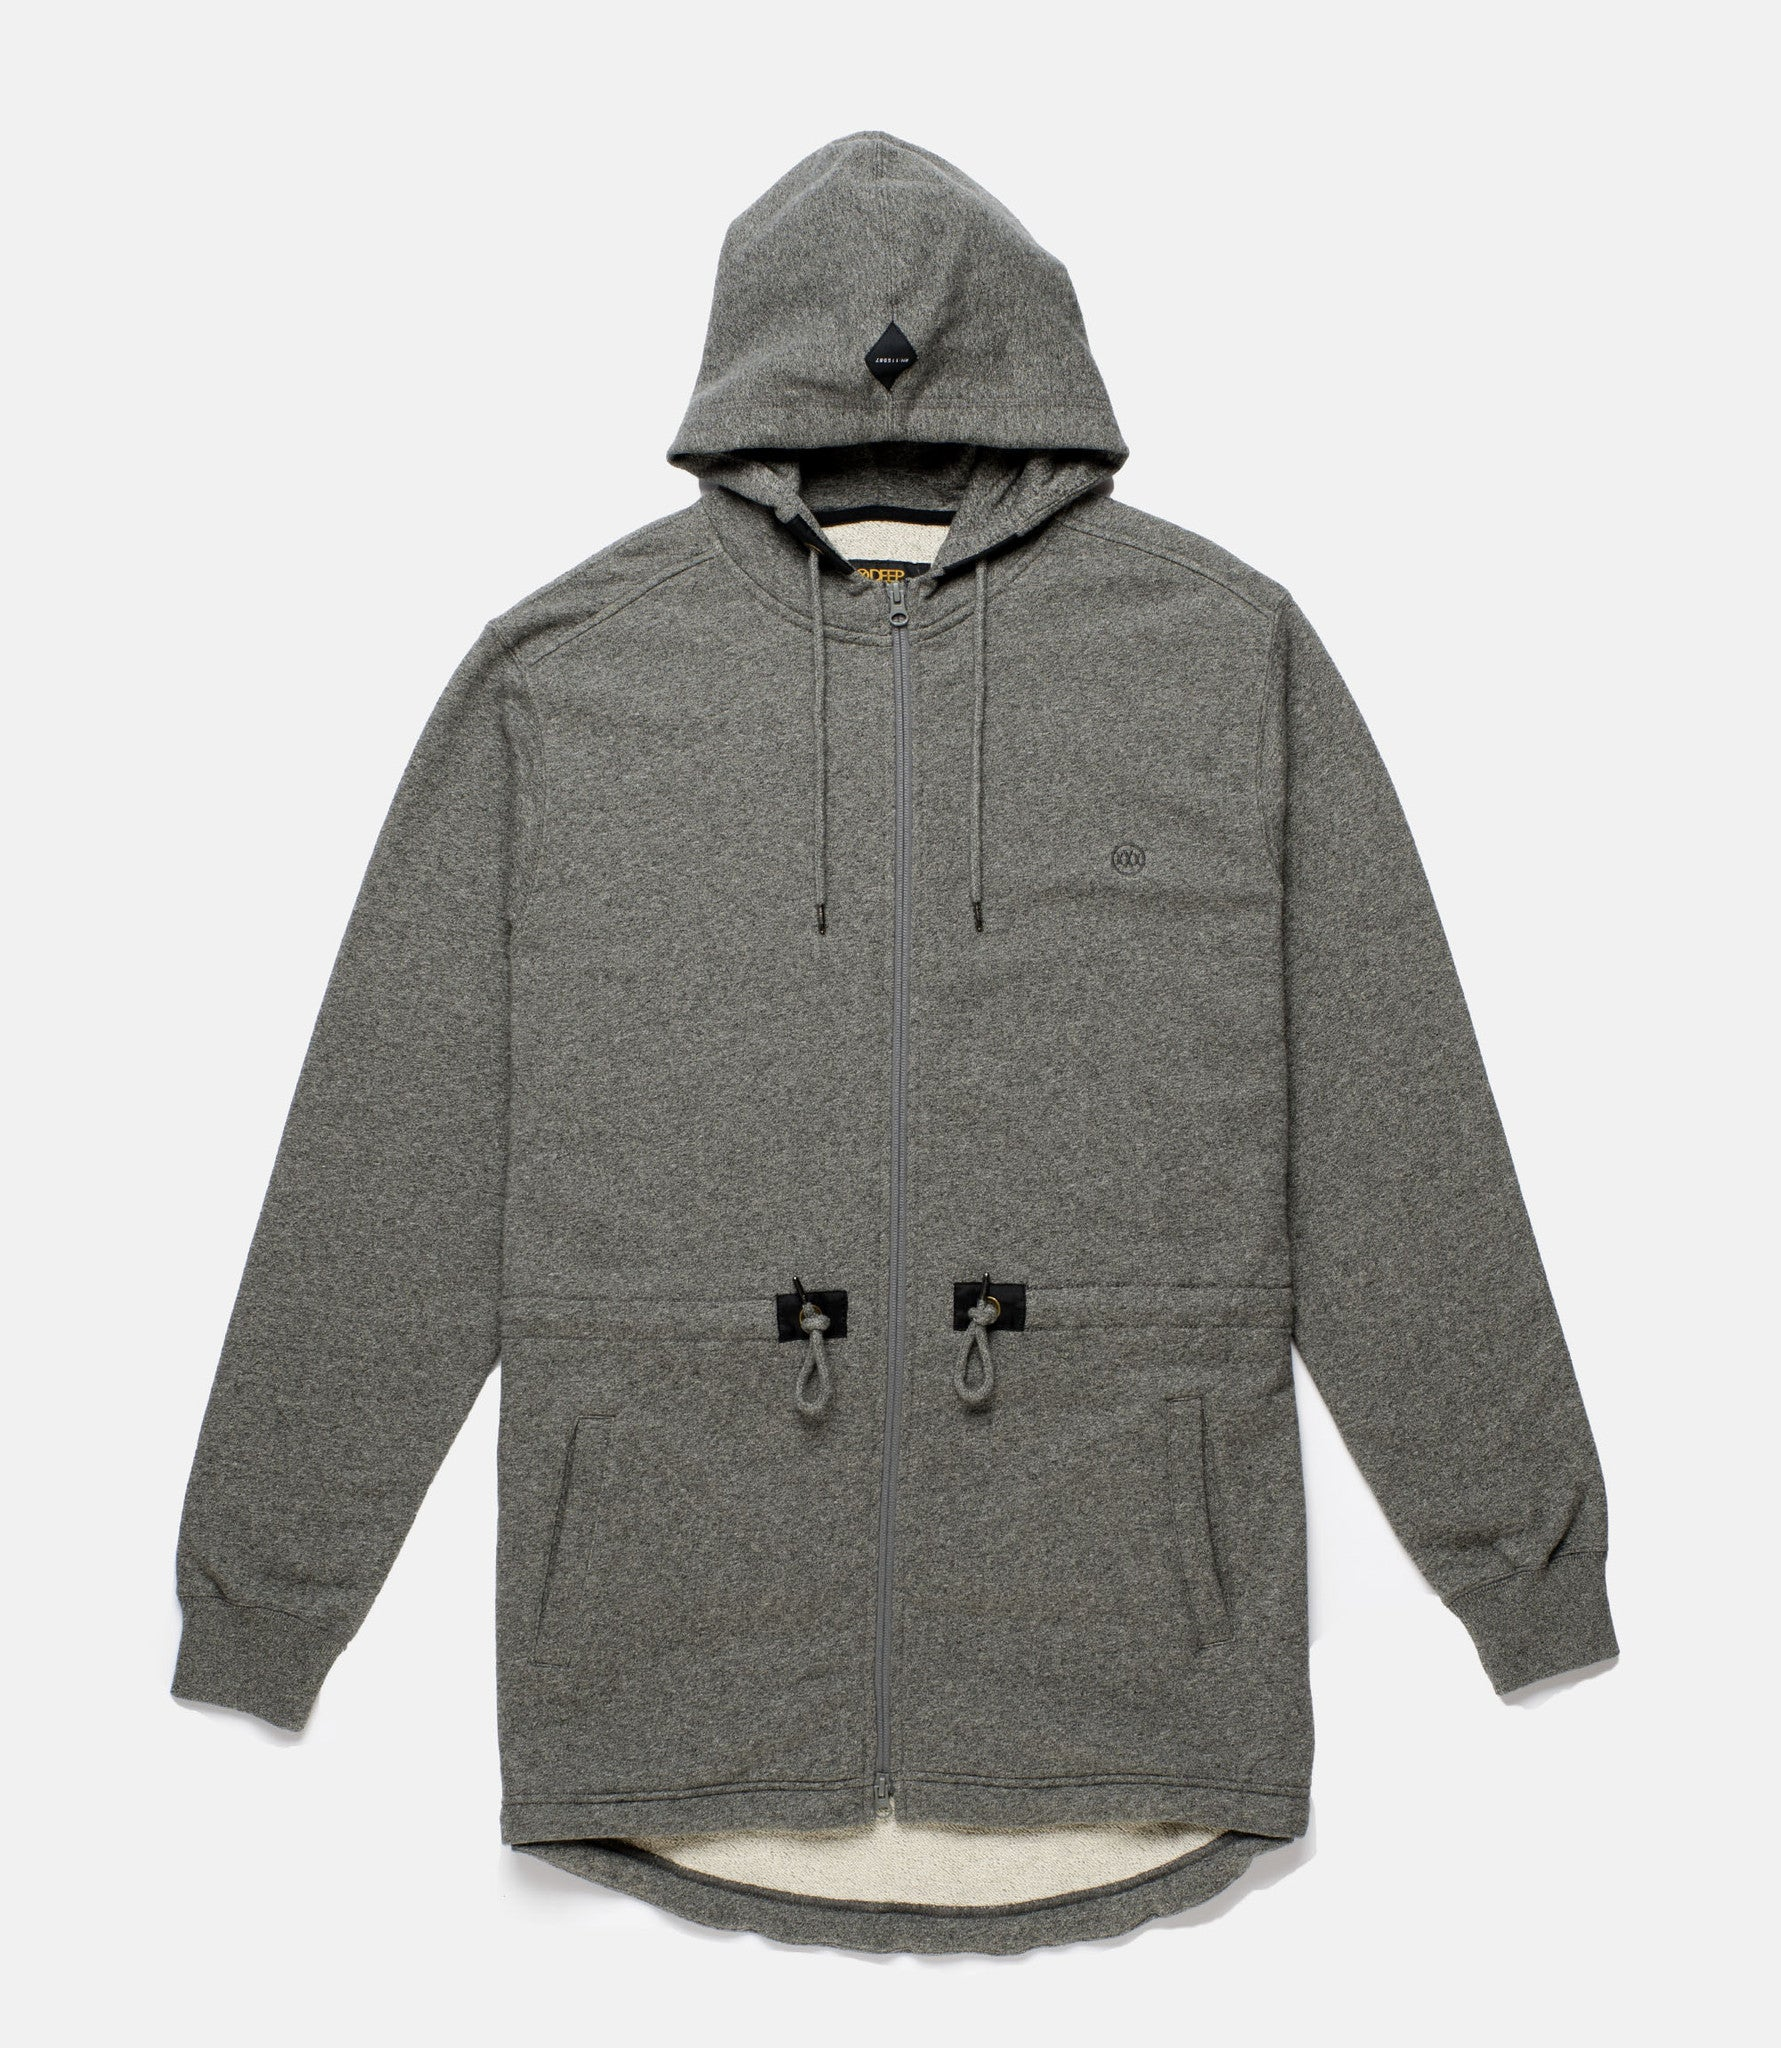 10Deep - Scooptail Men's Fleece Parka, Grey Marl - The Giant Peach